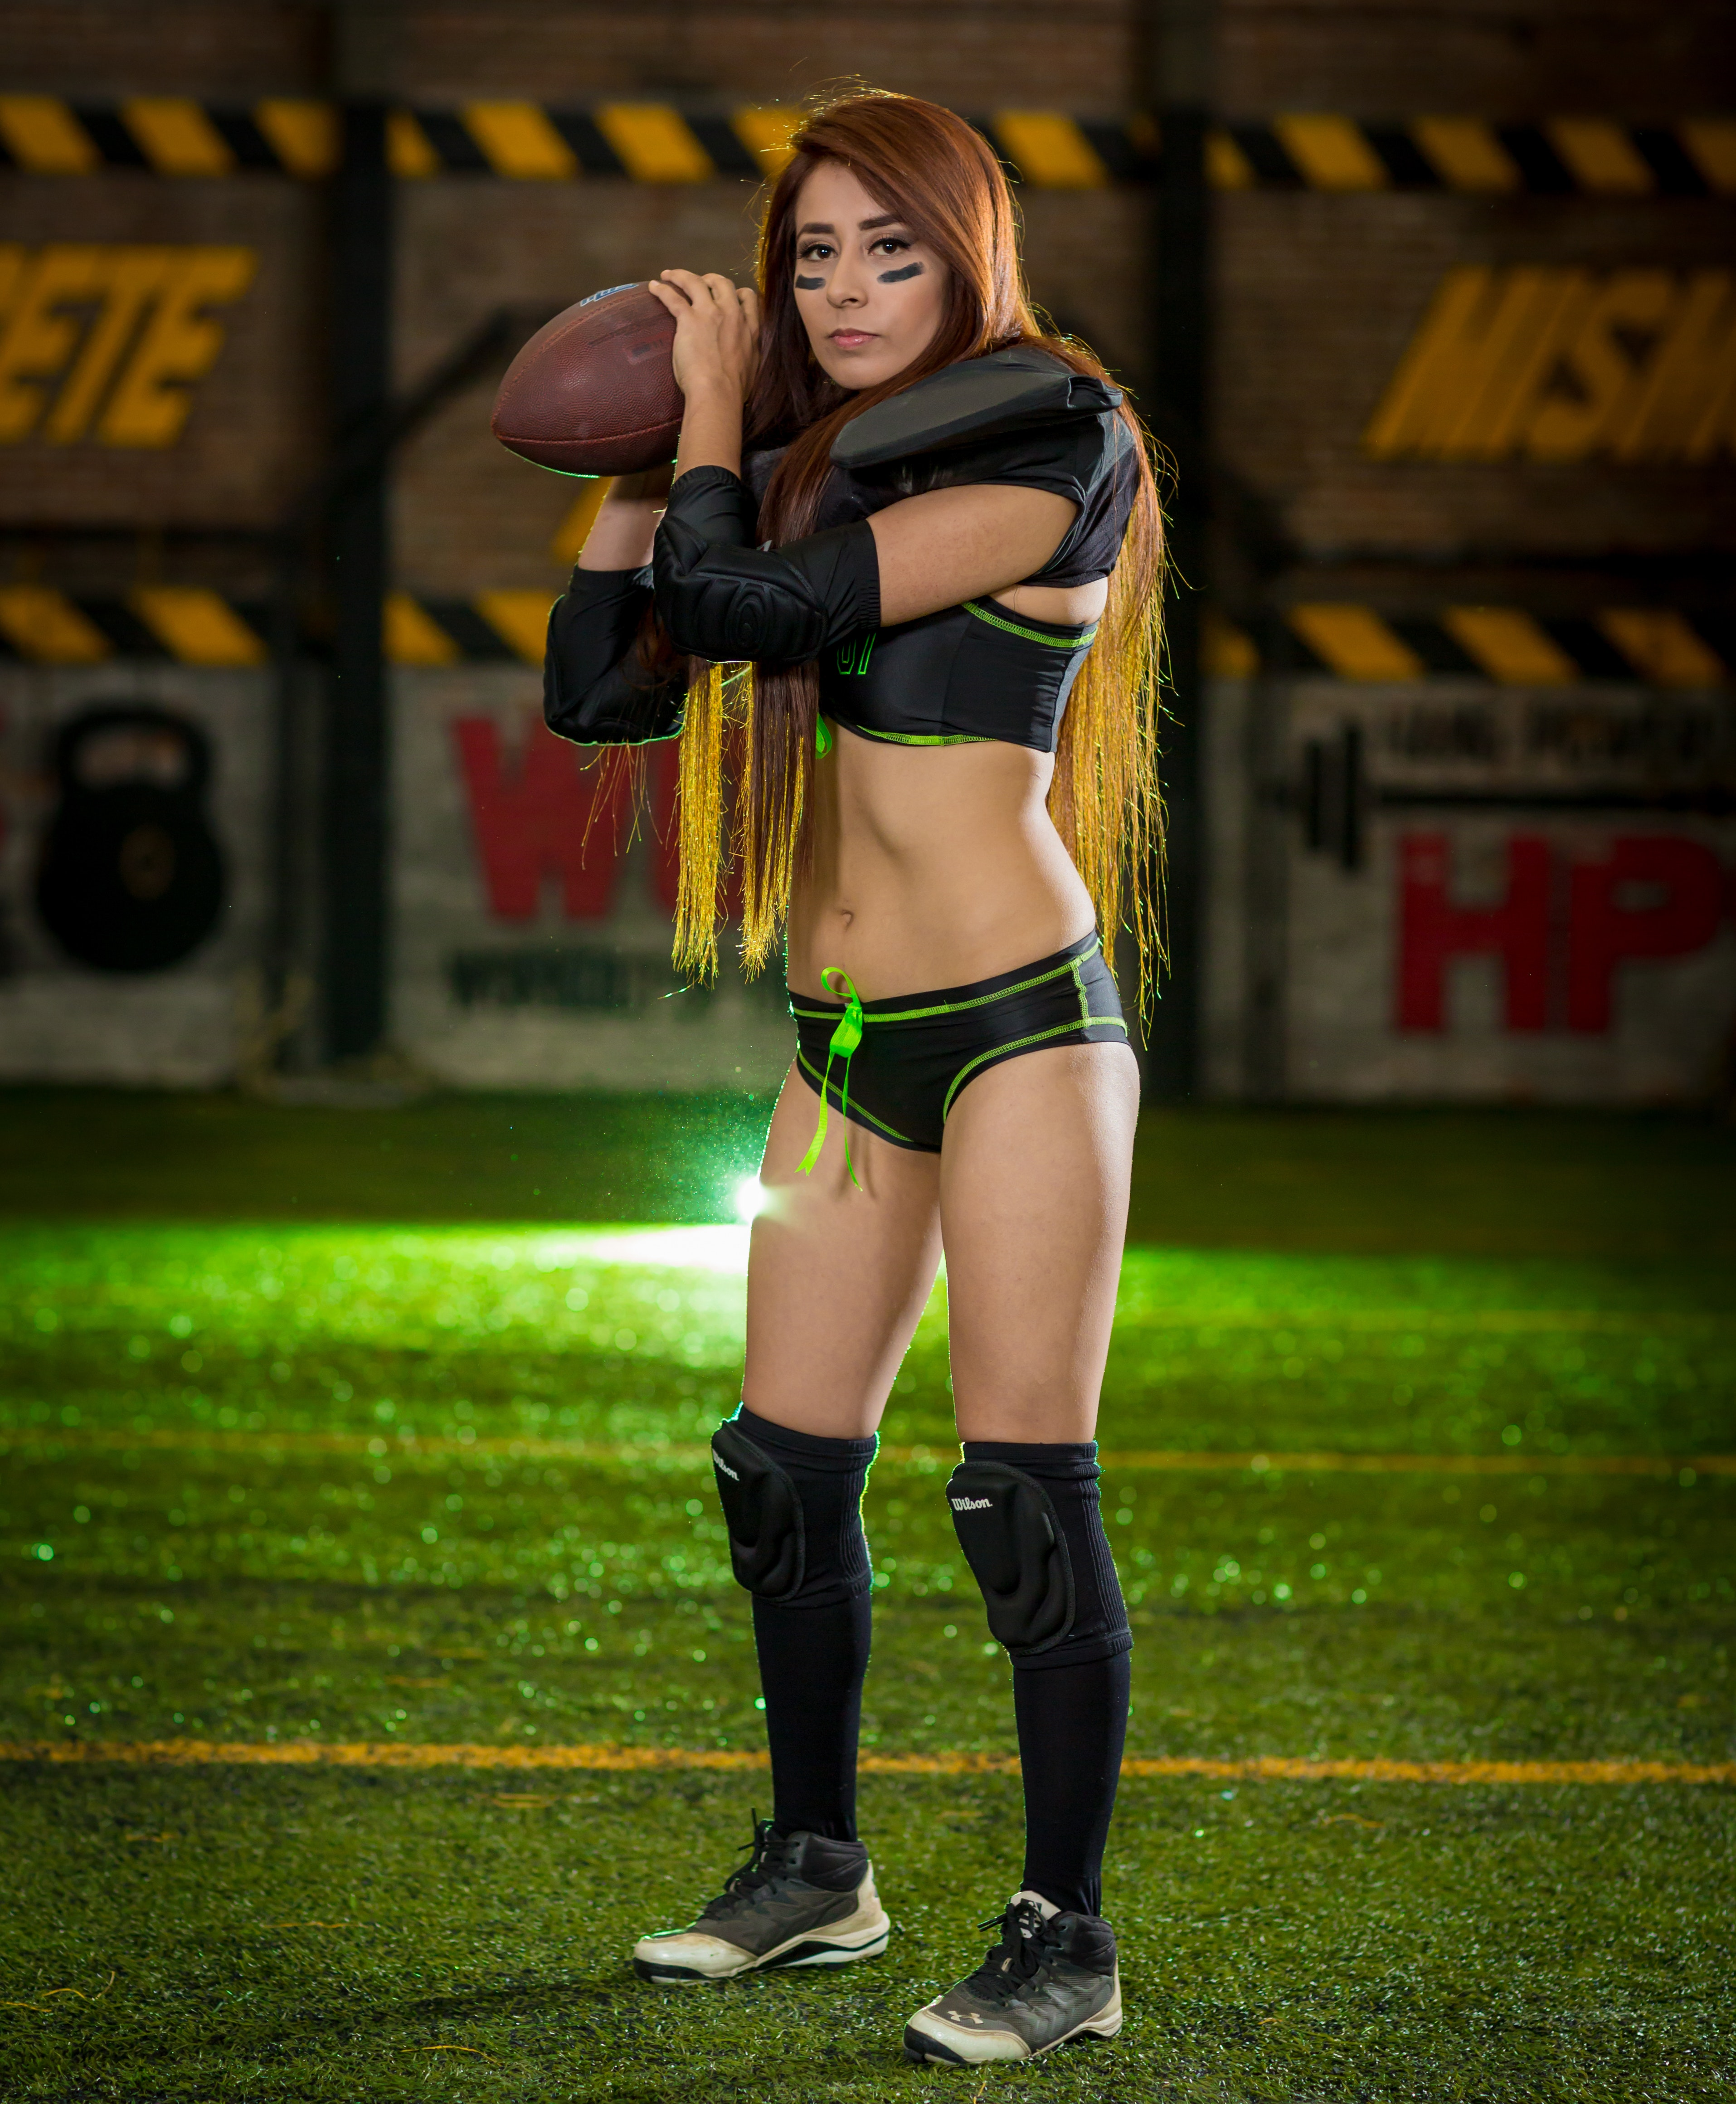 Woman wearing black-and-green sports bra and pantie holding rugby ball photo